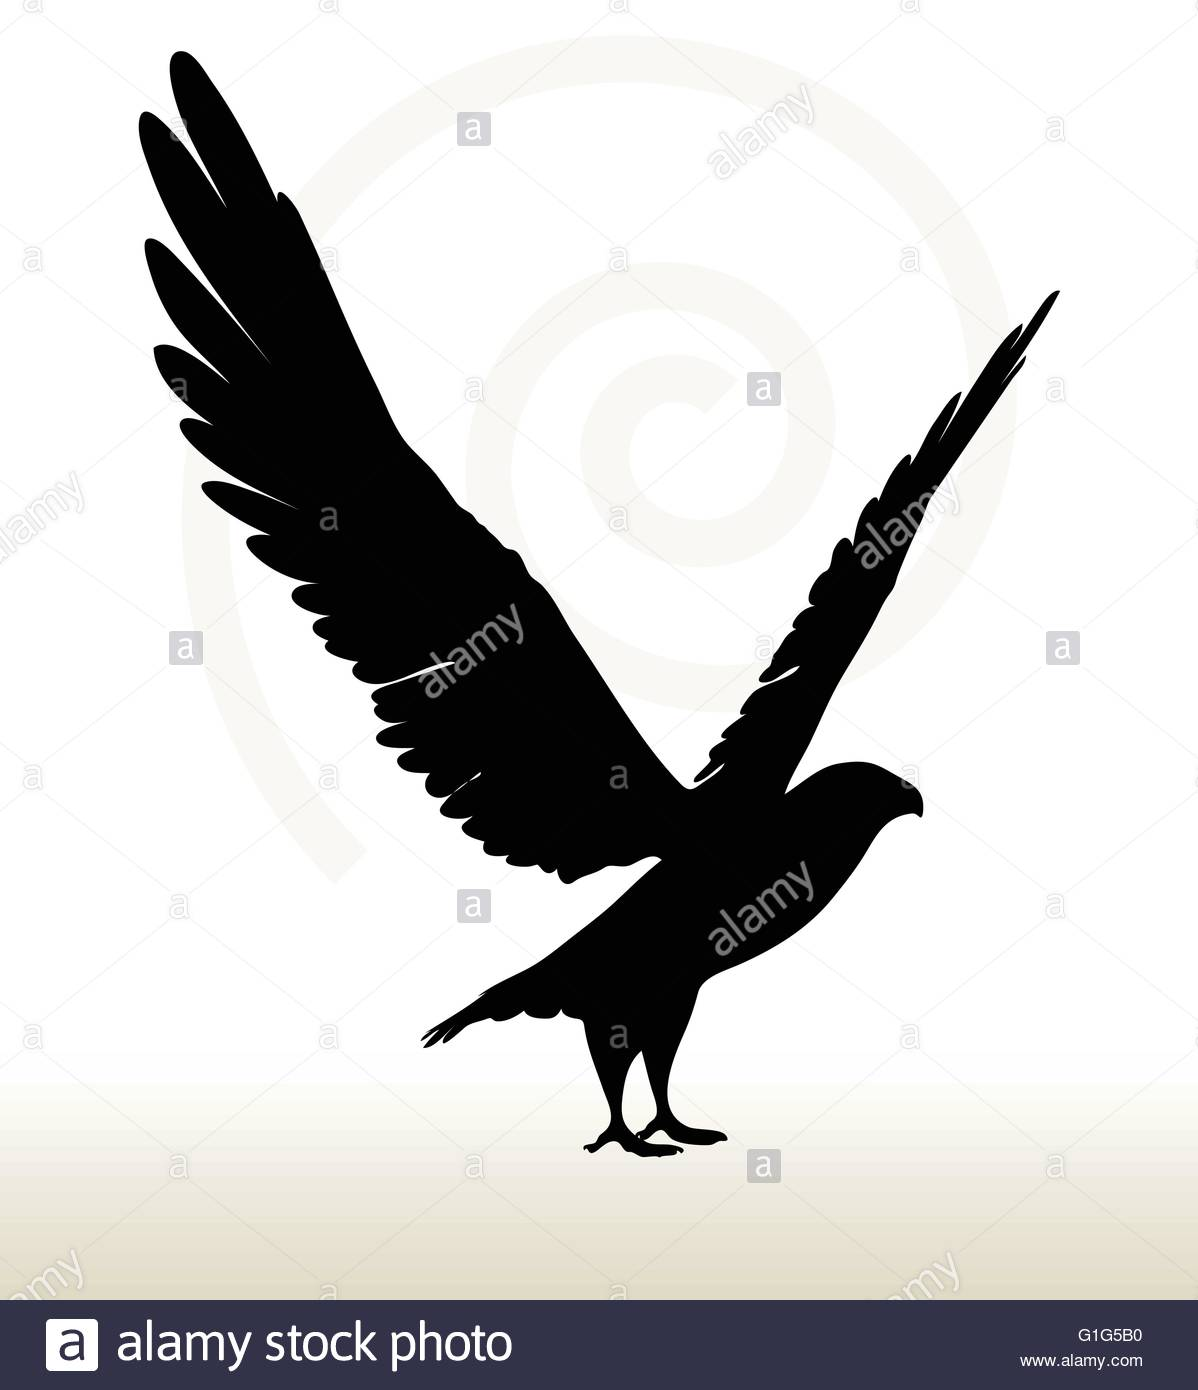 1198x1390 Bald Eagle Stock Vector Images